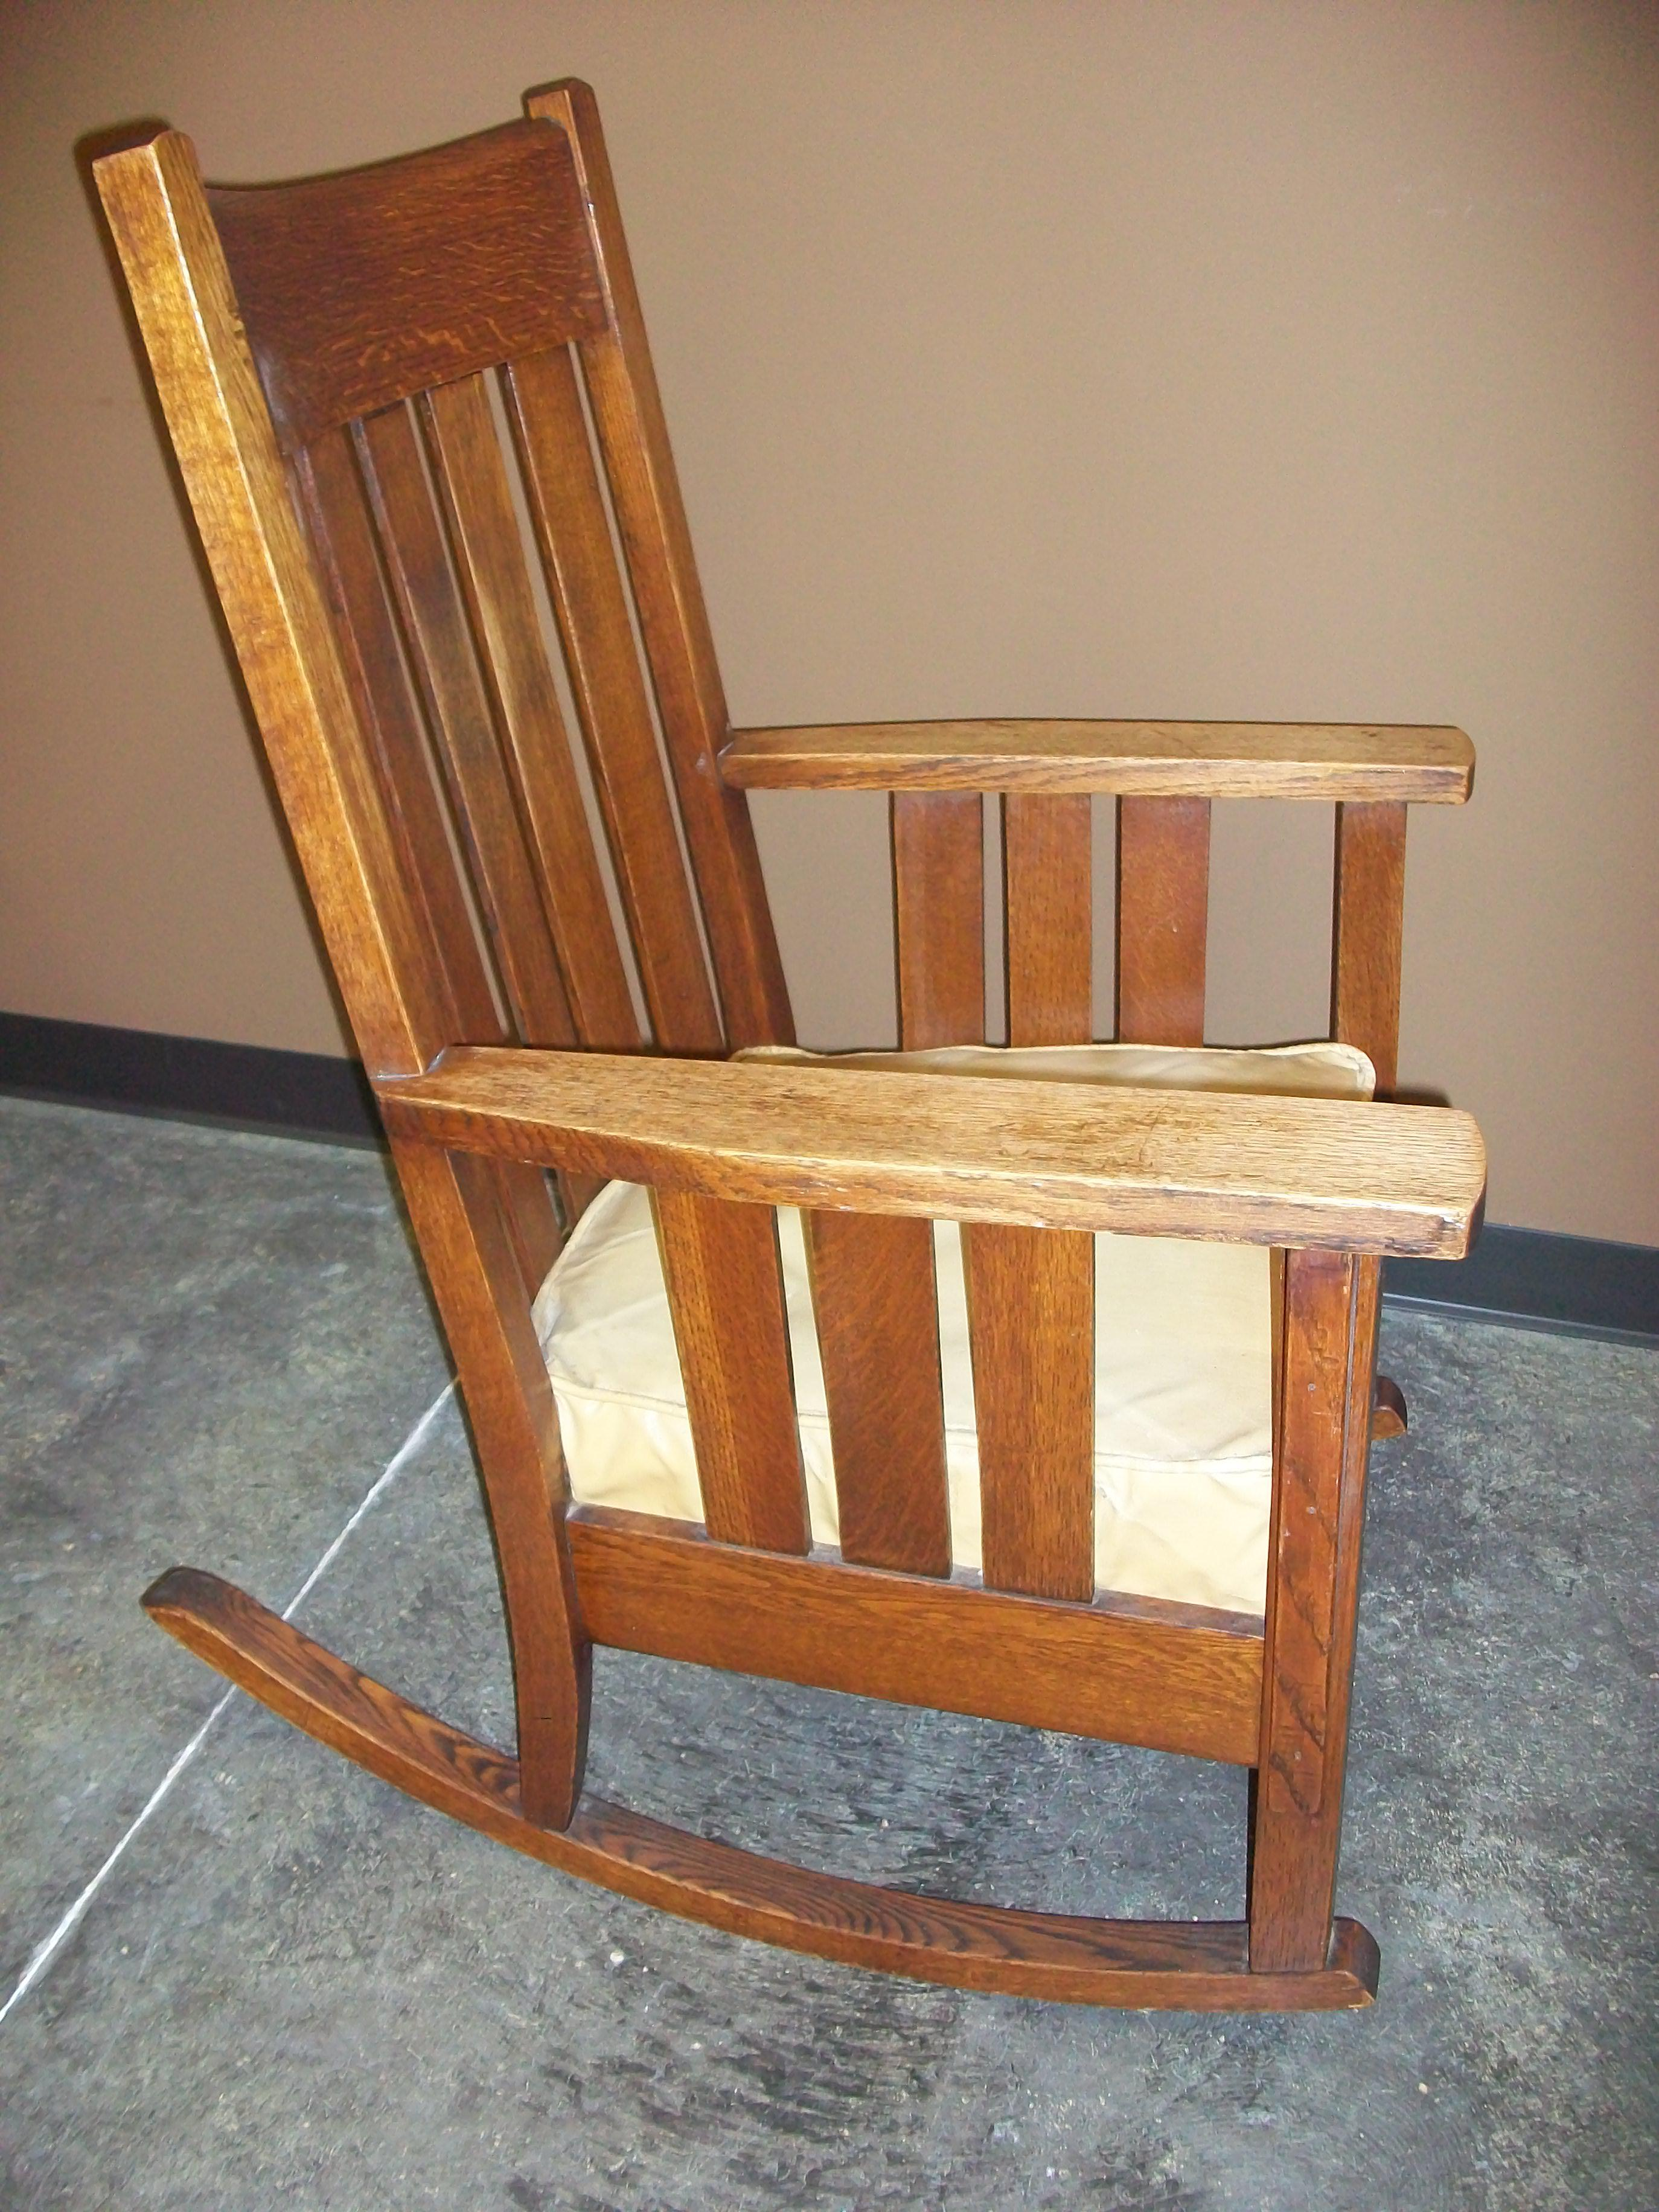 Label Says Phoenix Chair Co. Sheboygan, WI. Charming And Comfy Rocking Chair .